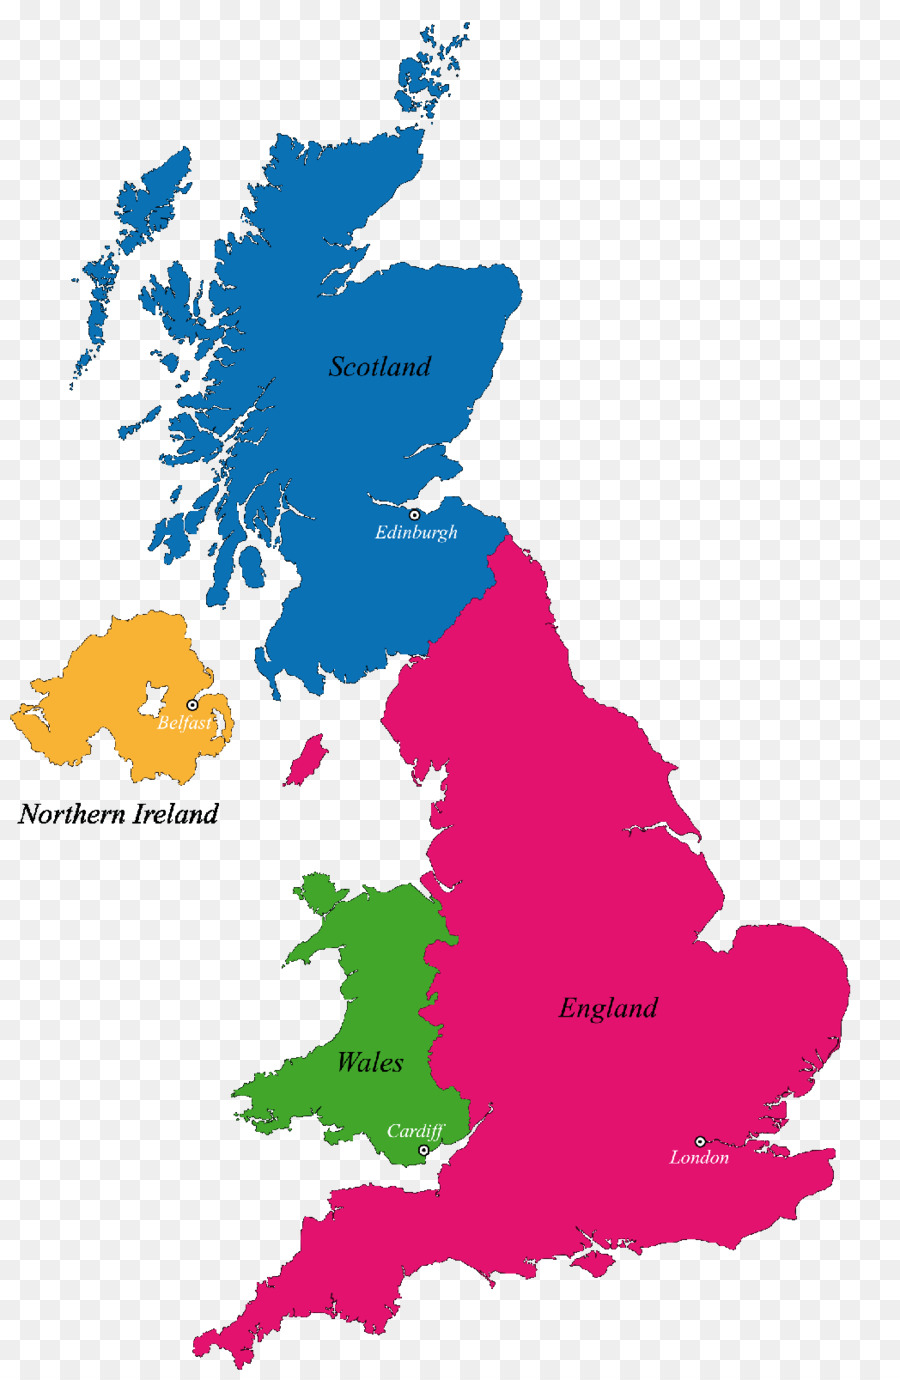 Map Of England 1600.Tree Line Png Download 1048 1600 Free Transparent England Png